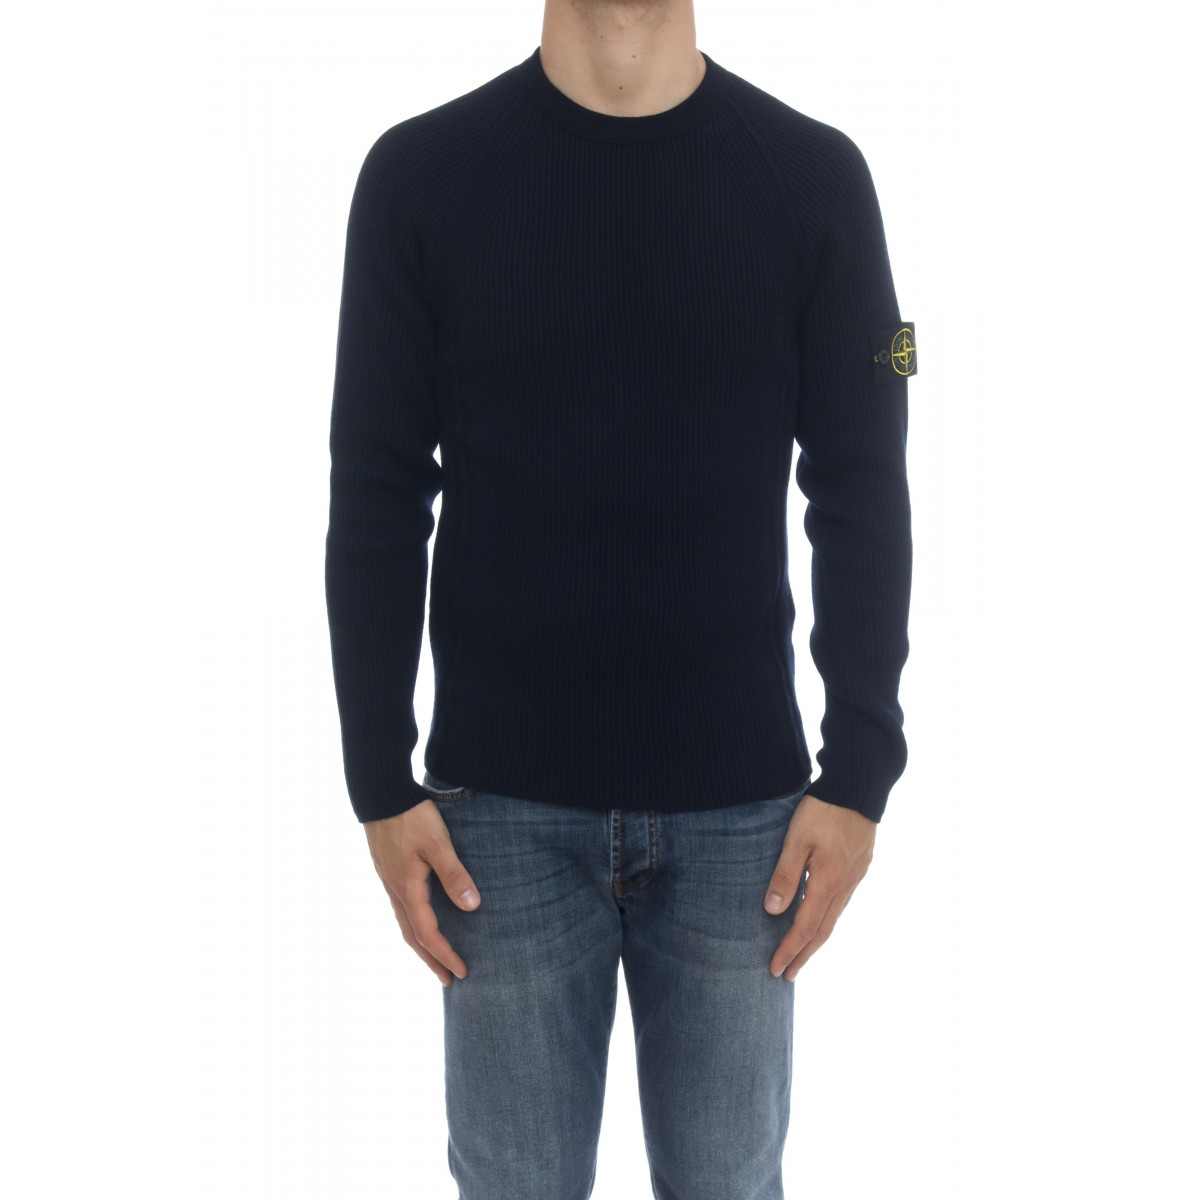 Crewneck - 516C2 Knit in full ribbed light wool